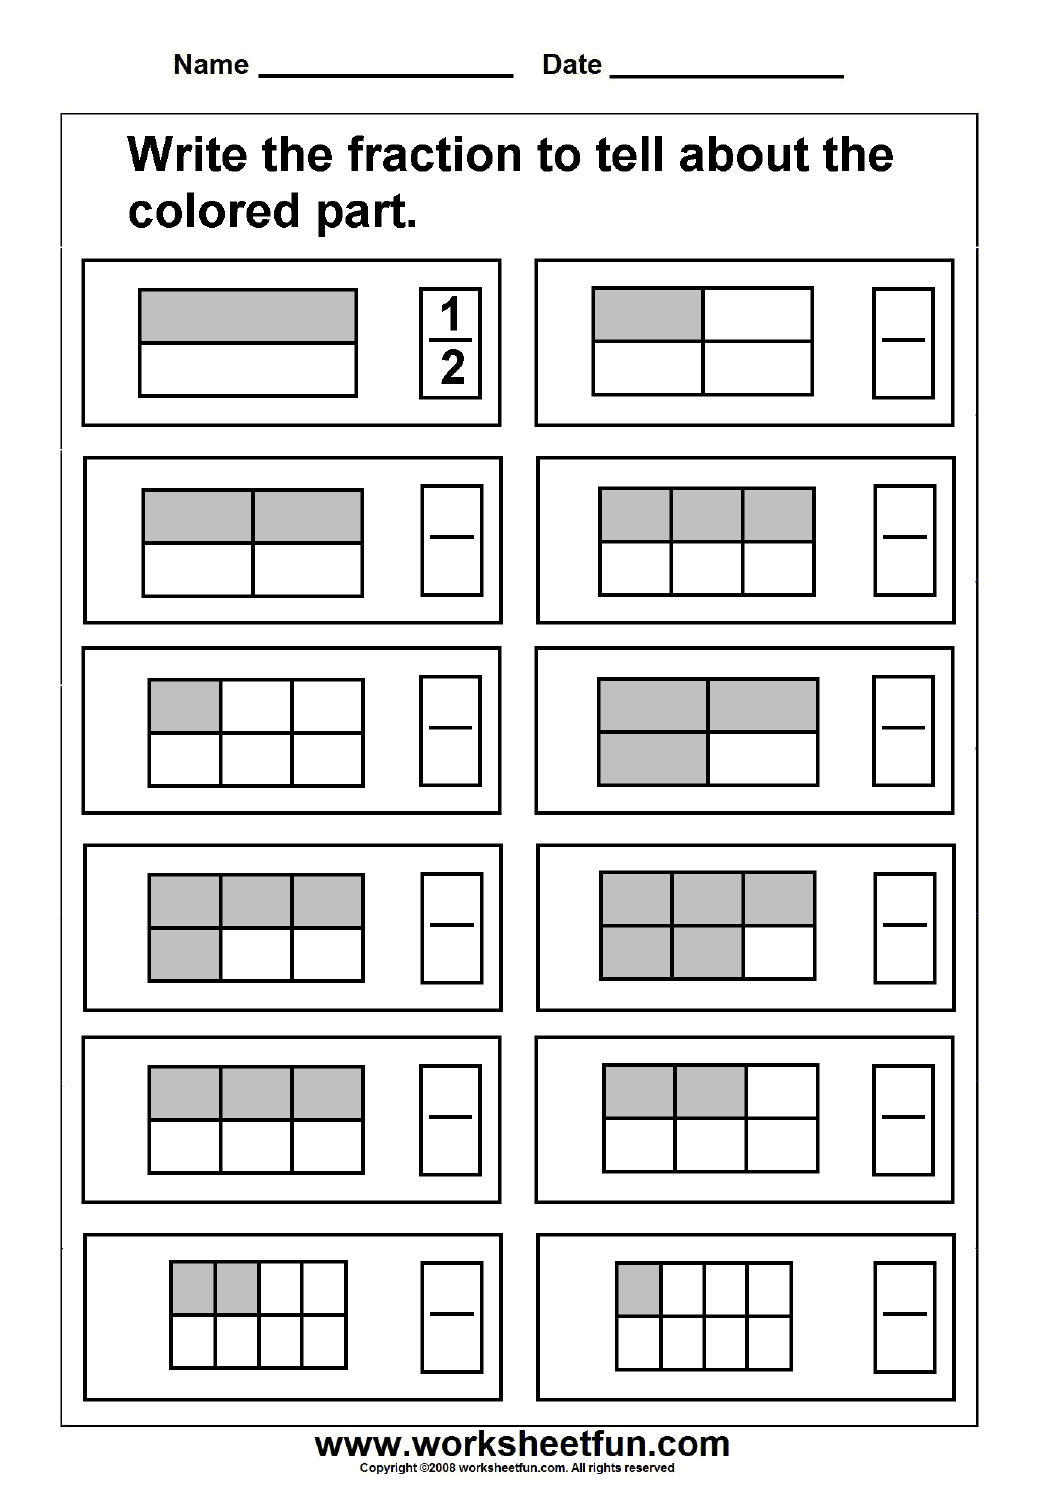 Printables Fraction Worksheets fraction free printable worksheets worksheetfun model 3 worksheets